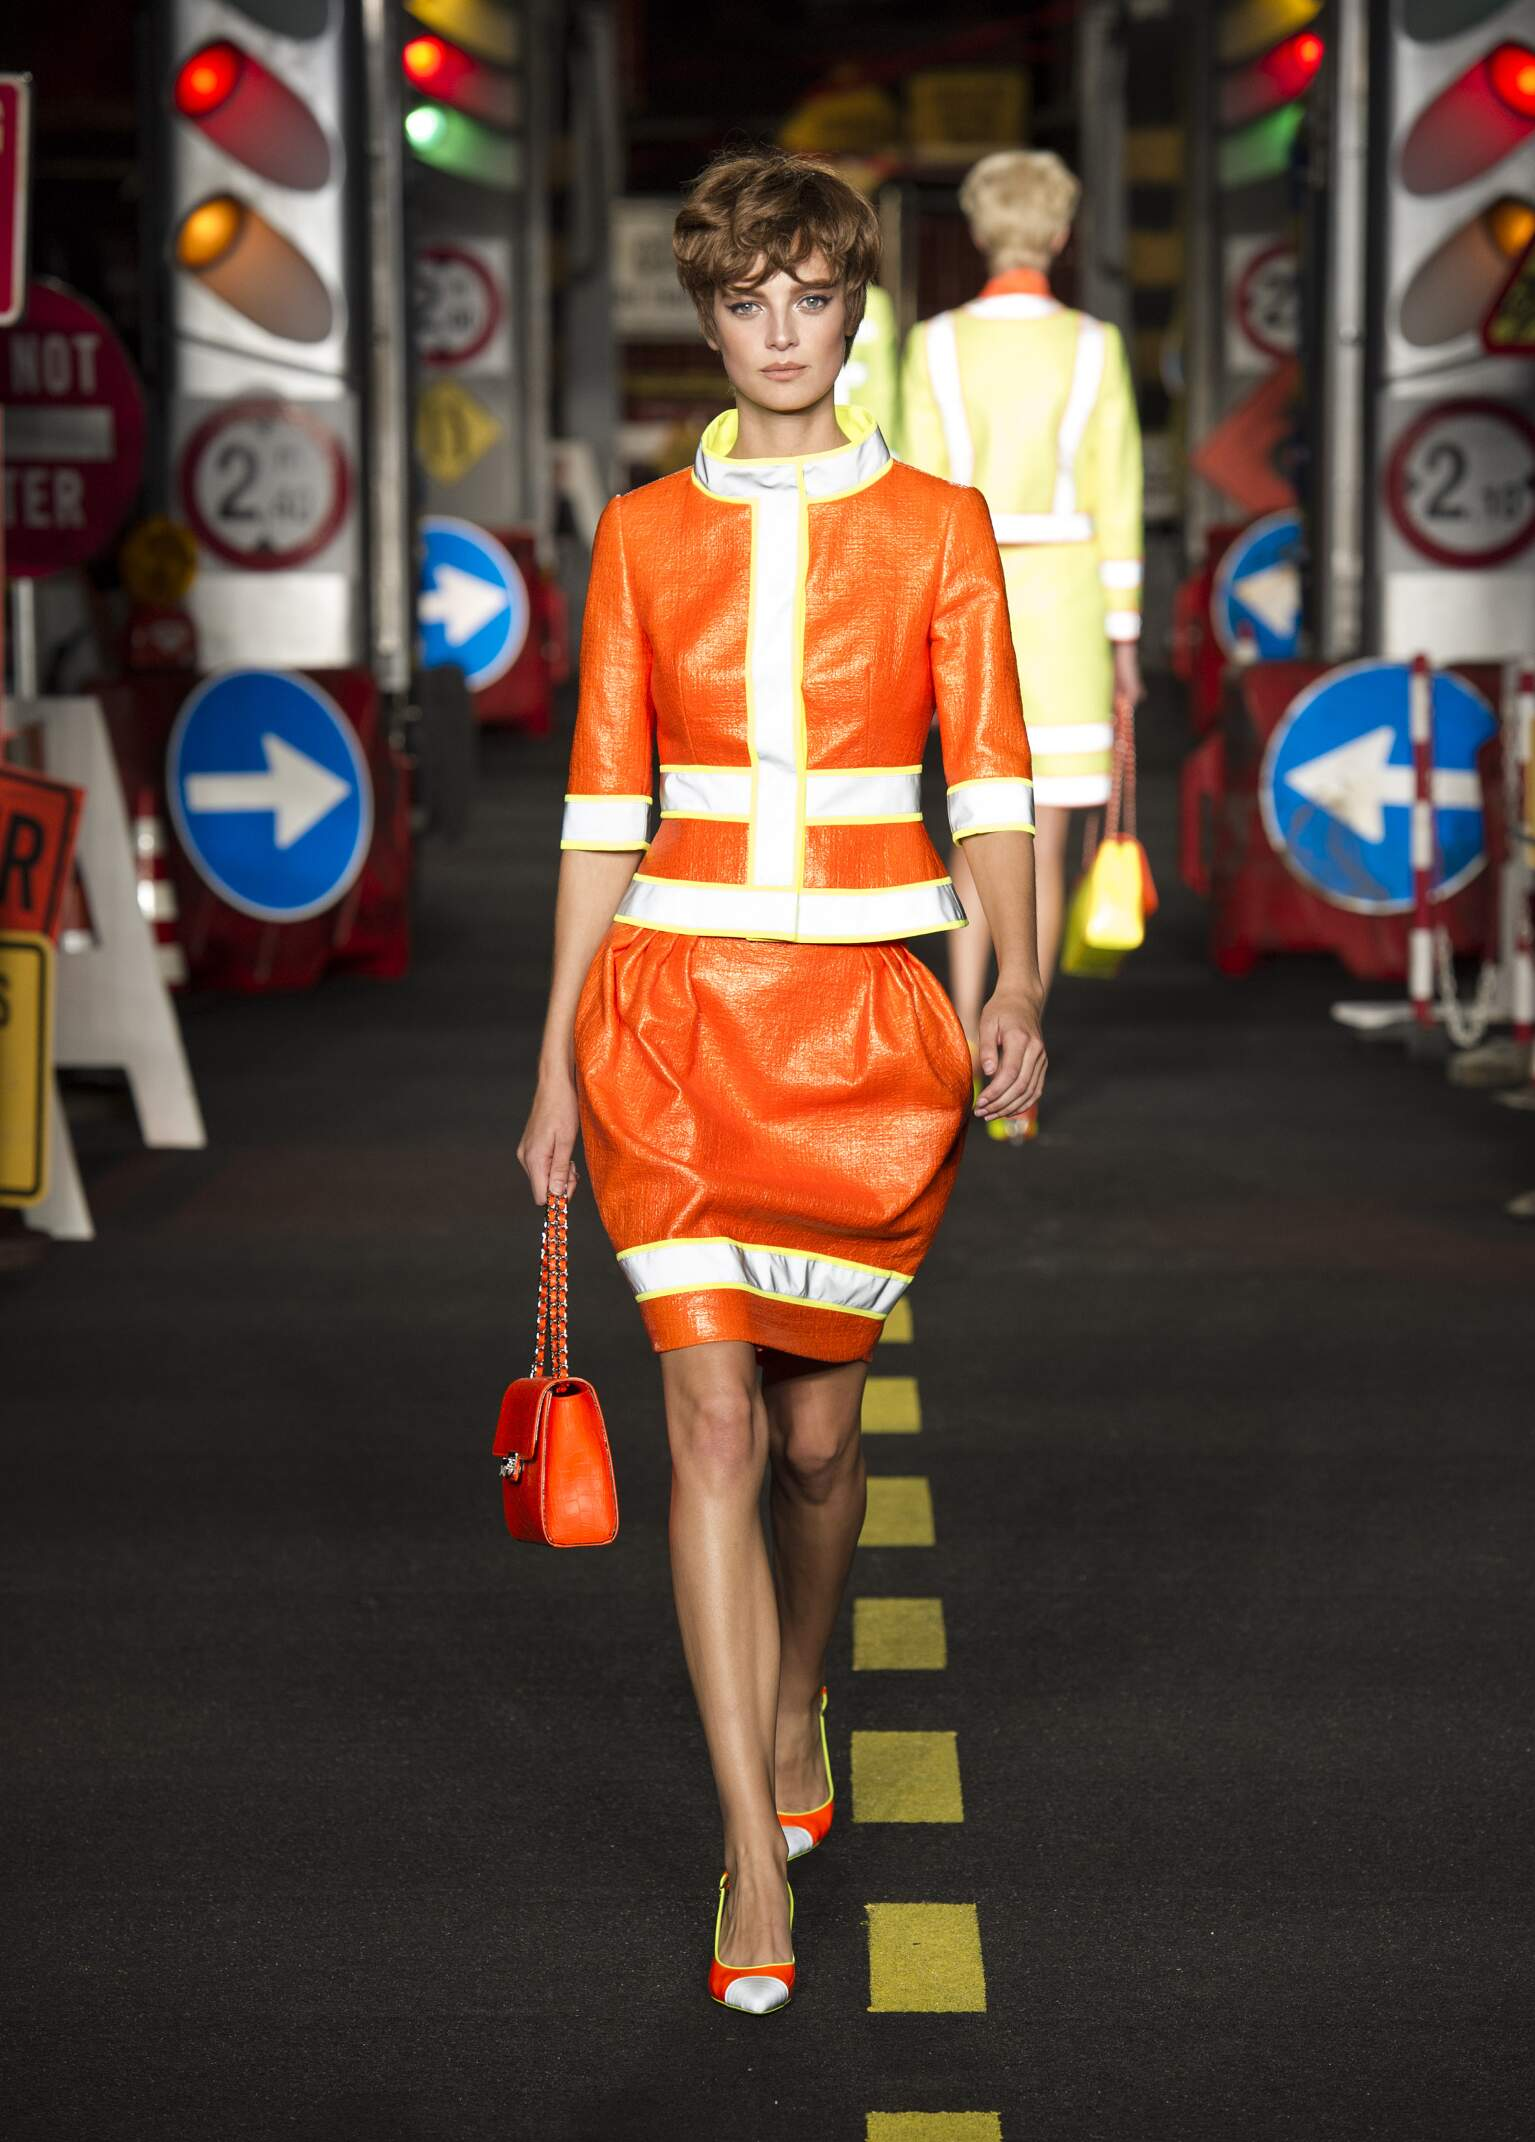 SS 2016 Moschino Fashion Show